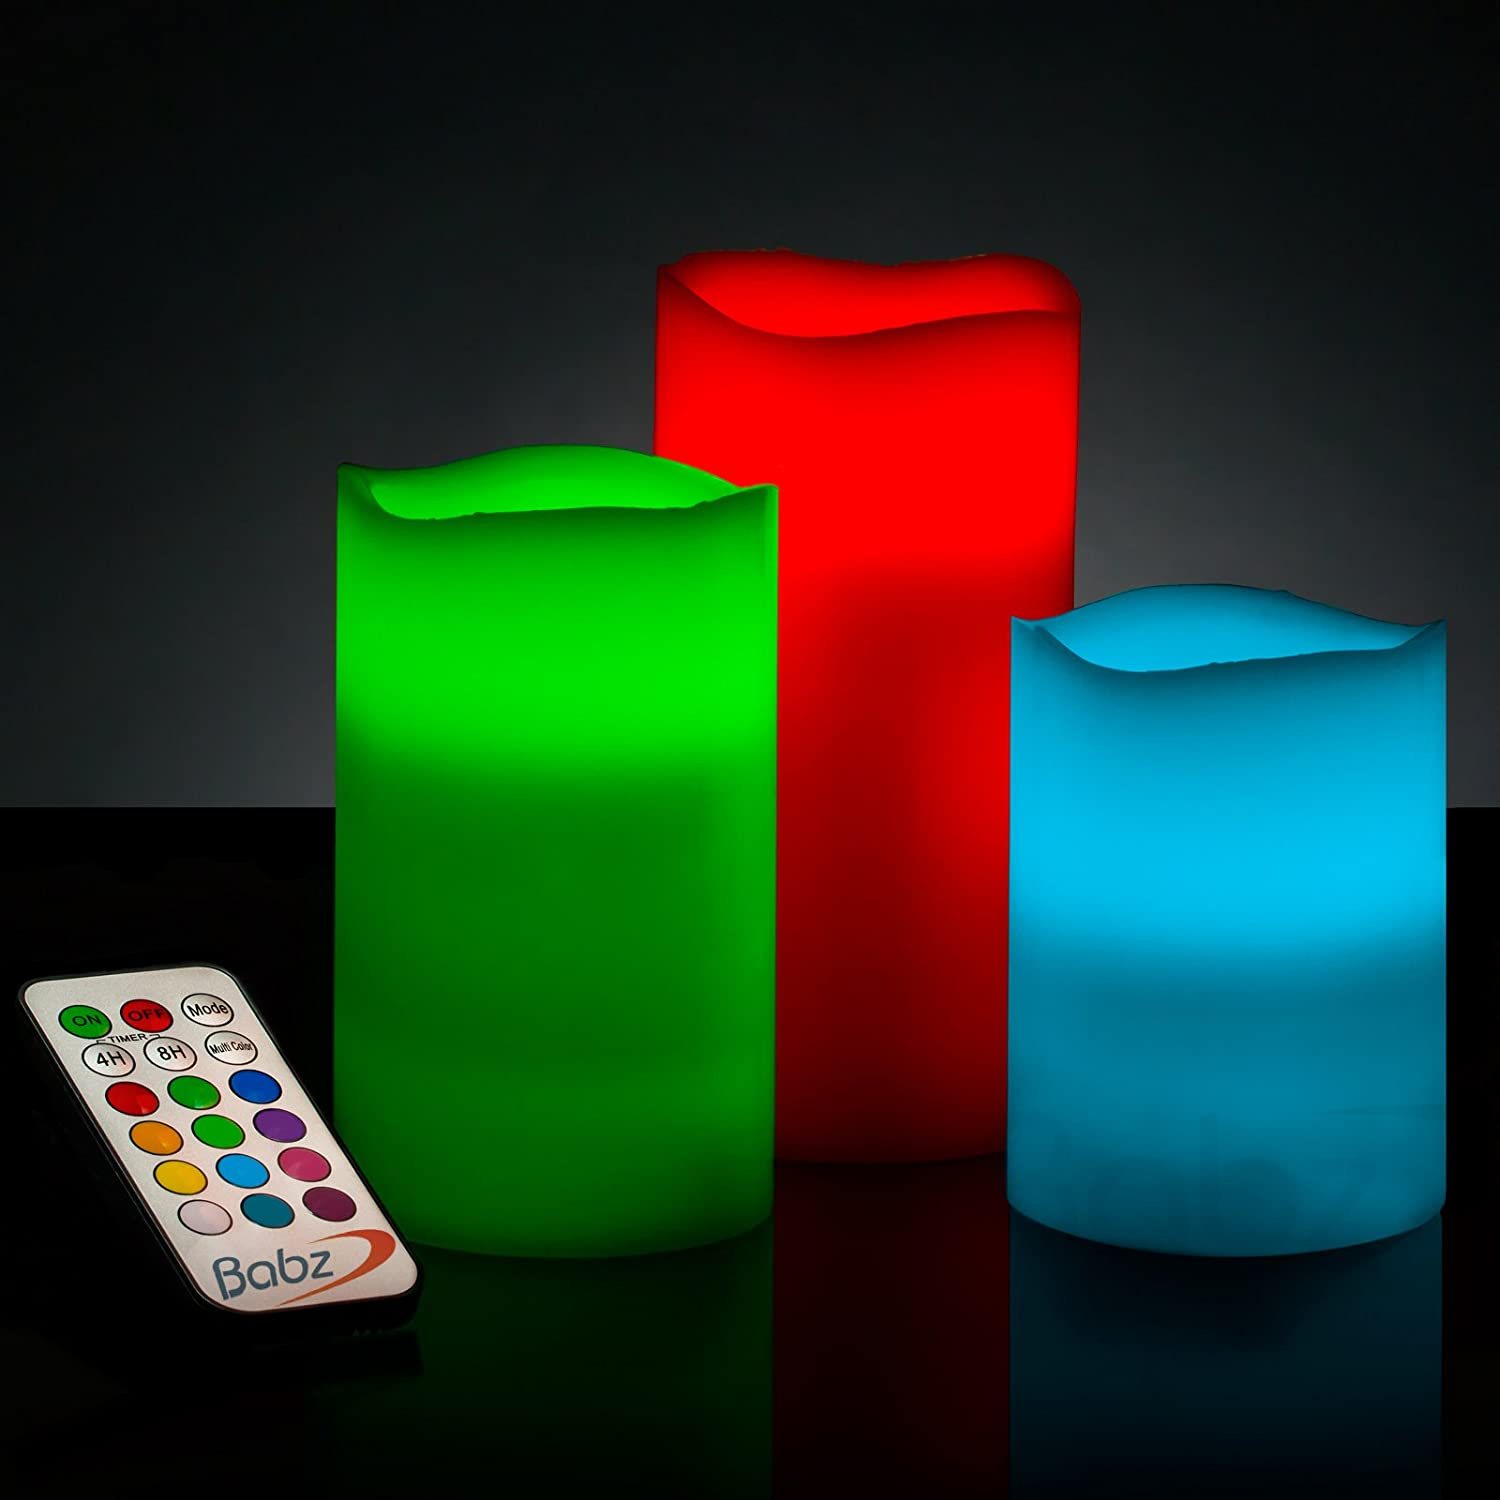 Babz Smooth 3 x Weatherproof Outdoor and Indoor Colour Changing LED Candles with Remote Control & Timer - Vanilla Scent Babz Media Ltd